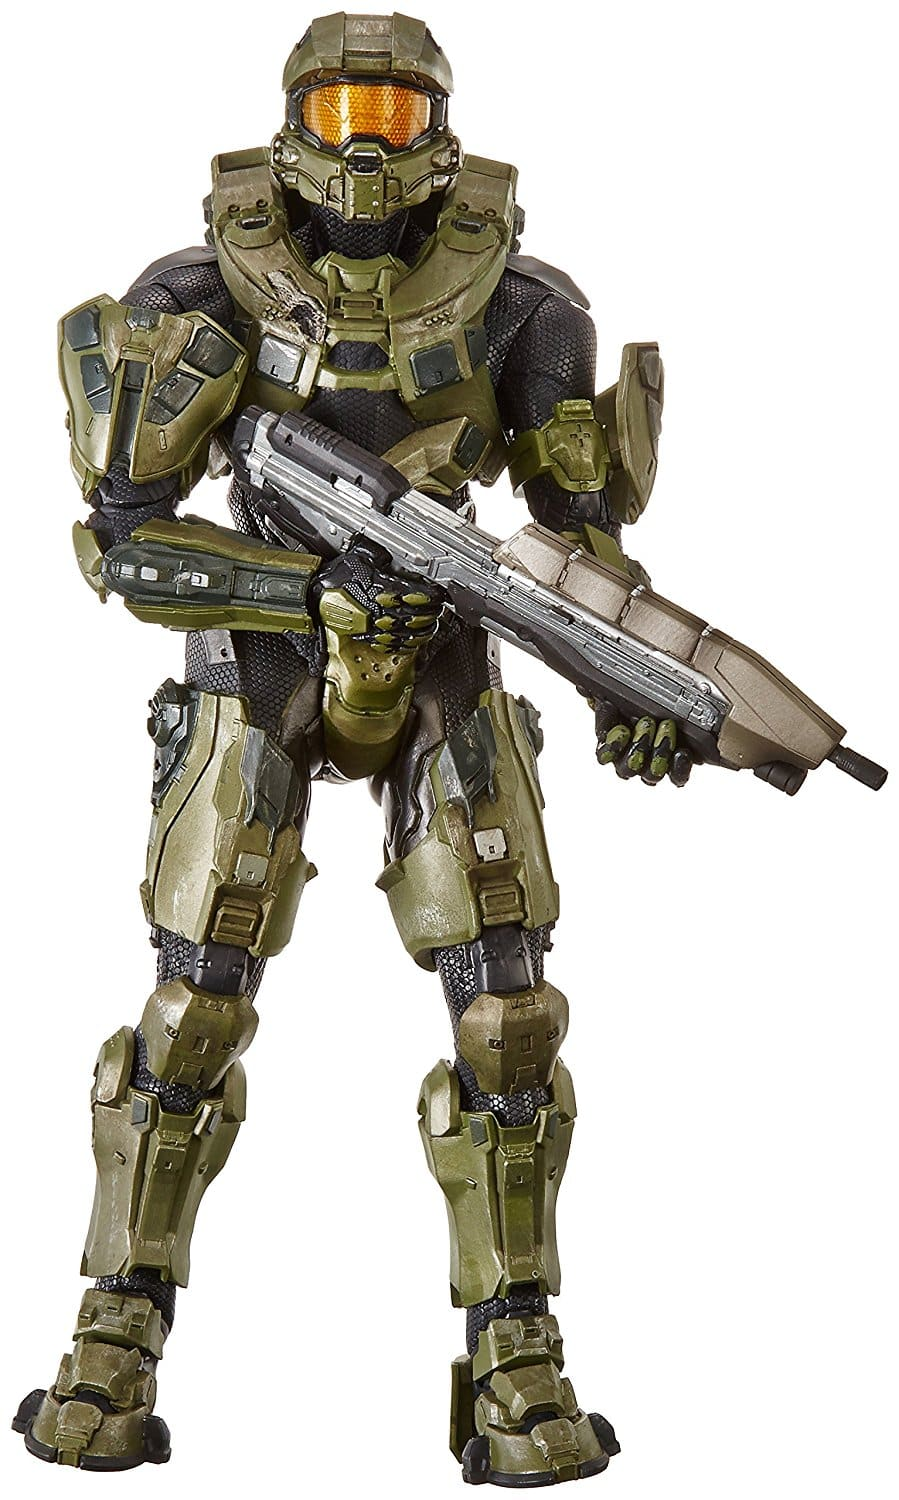 "NECA Halo 18"" Master Chief fully articulated figure $91.92"